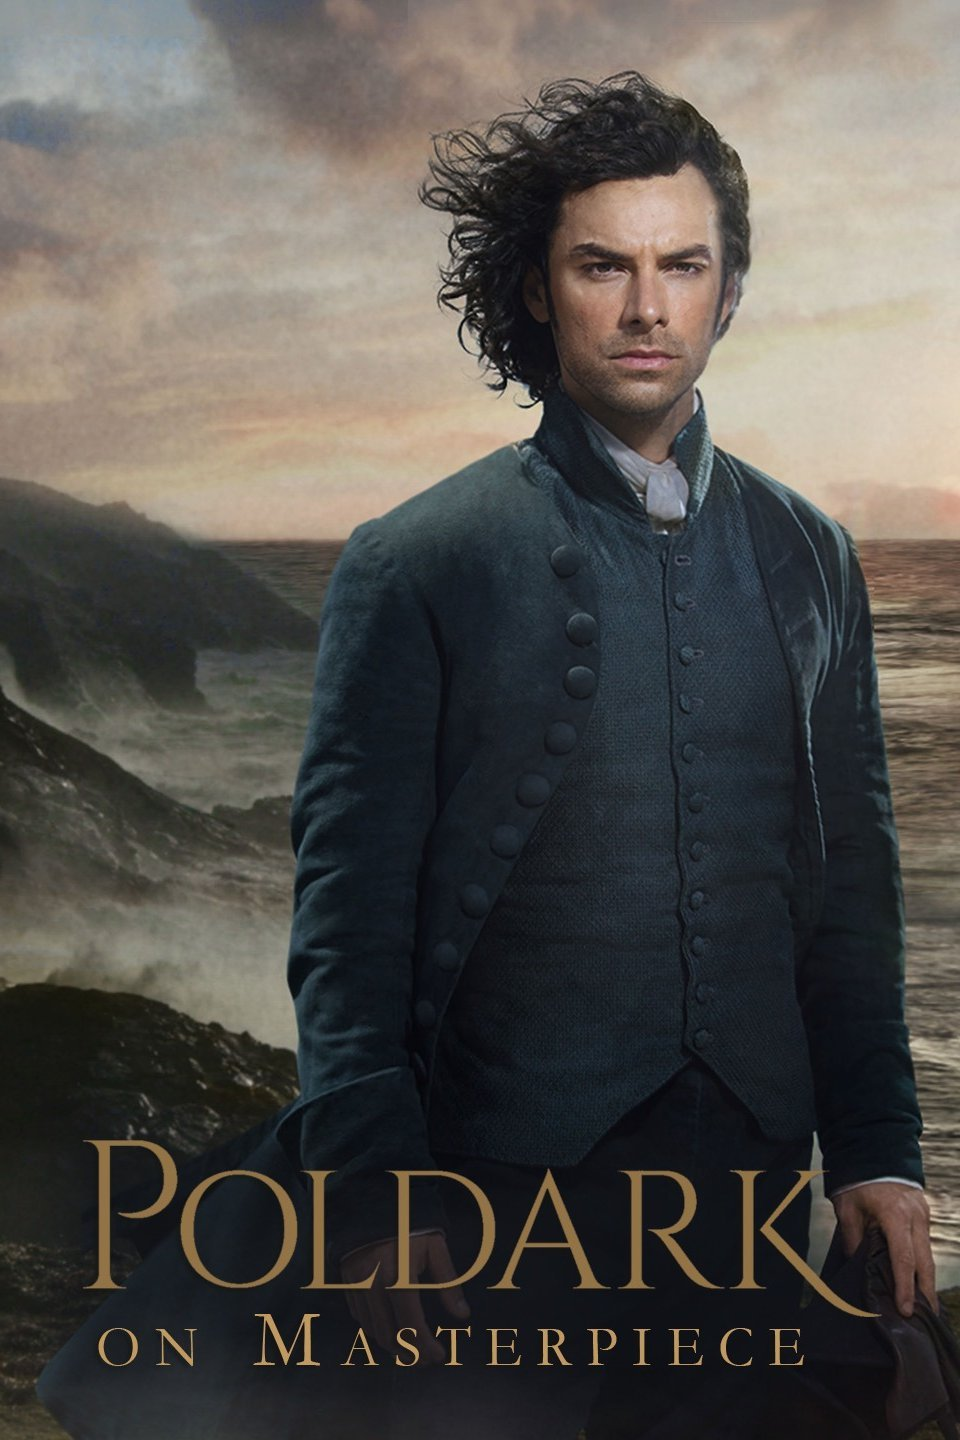 Poldark Season 4 Episode 8 Download HDTV 480p 720p